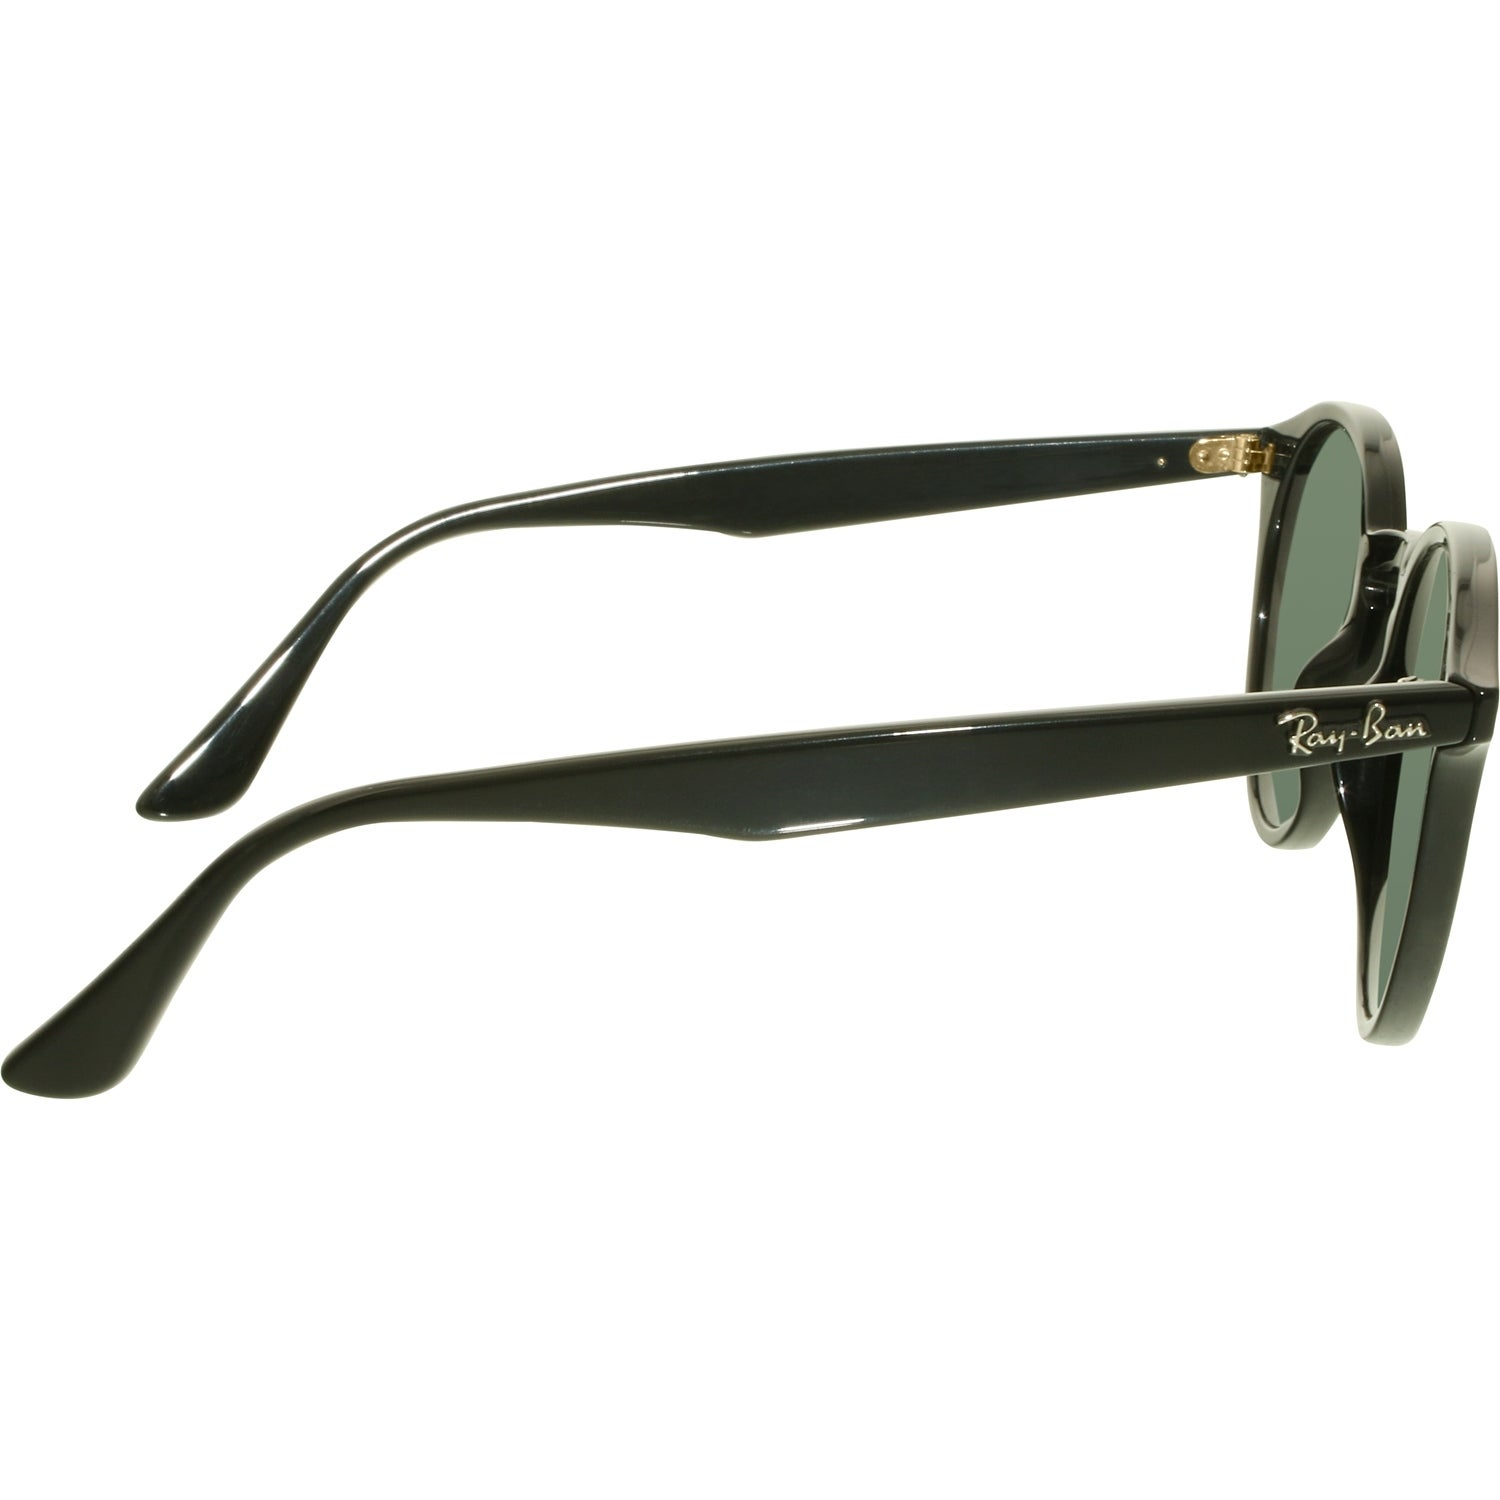 352fbd545b967 Shop Ray-Ban Women s RB2180 RB2180-601 71-49 Black Round Sunglasses - Free  Shipping Today - Overstock.com - 18901316 .